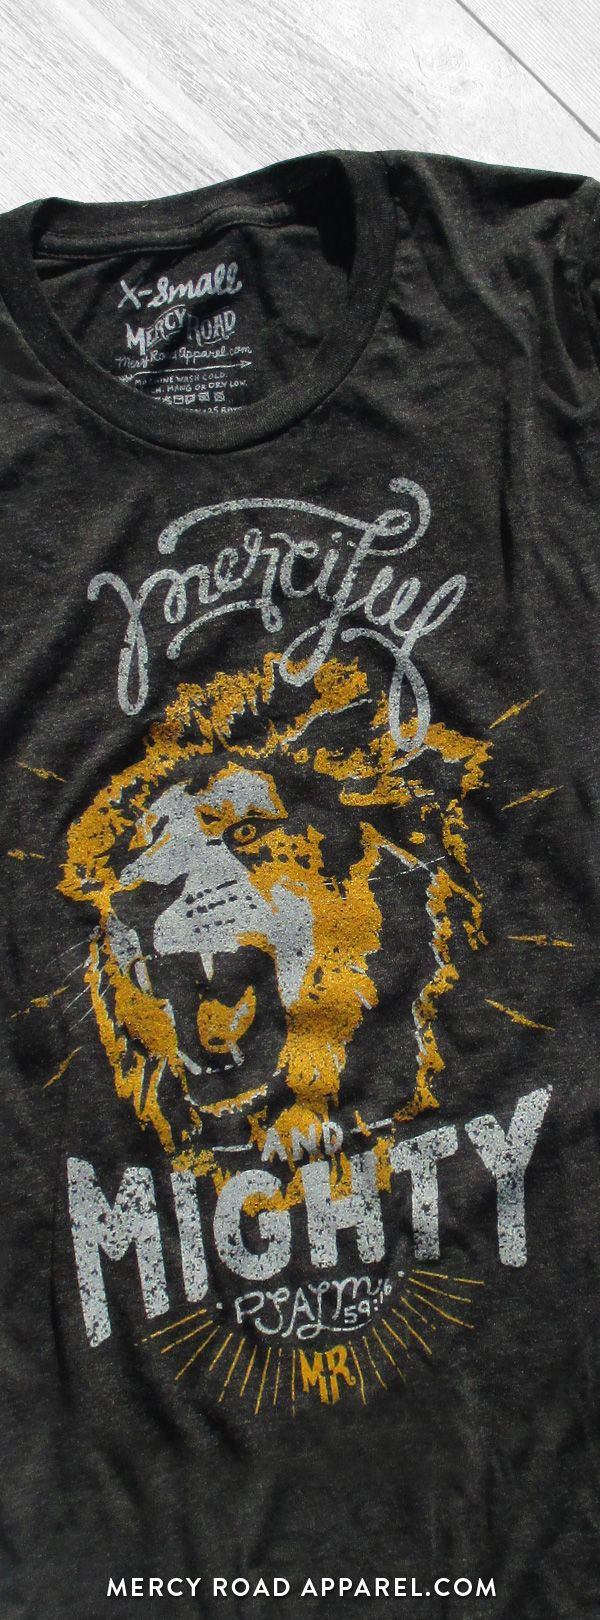 "Christian T-Shirt with Jesus as the lion of Judah, a roaring lion and Psalm 59:16 ""Merciful and Mighty."" This scripture shirt is handcrafted and screenprinted on a gloriously comfy charcoal black triblend tee. Quality Christian clothing for women and men. FREE SHIPPING USA. Shop >> MercyRoadApparel.com"